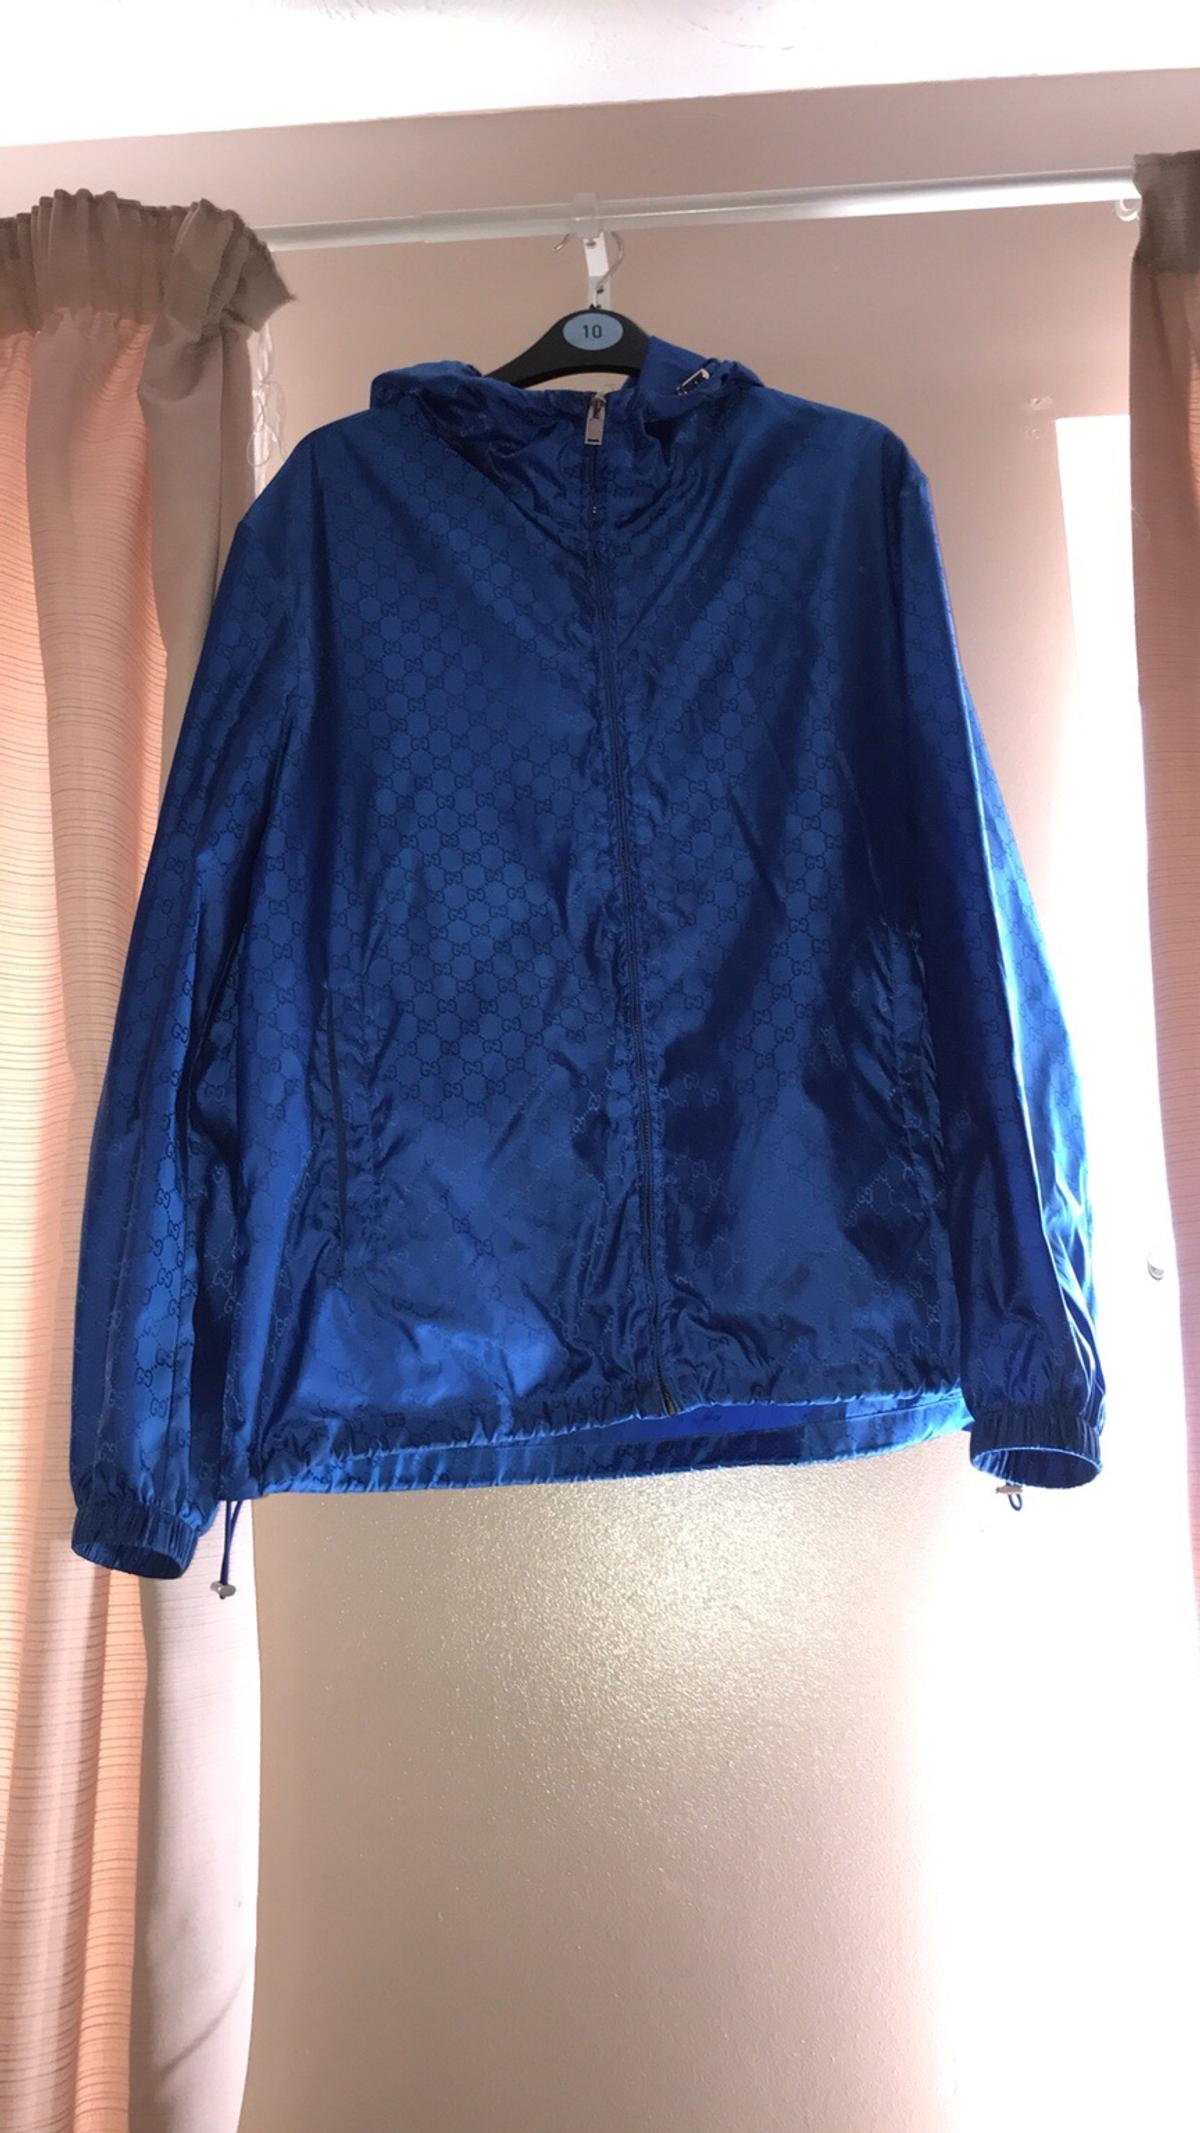 fb5fa3260 Gucci Jacket (rare) in S43 Bolsover for £650.00 for sale - Shpock